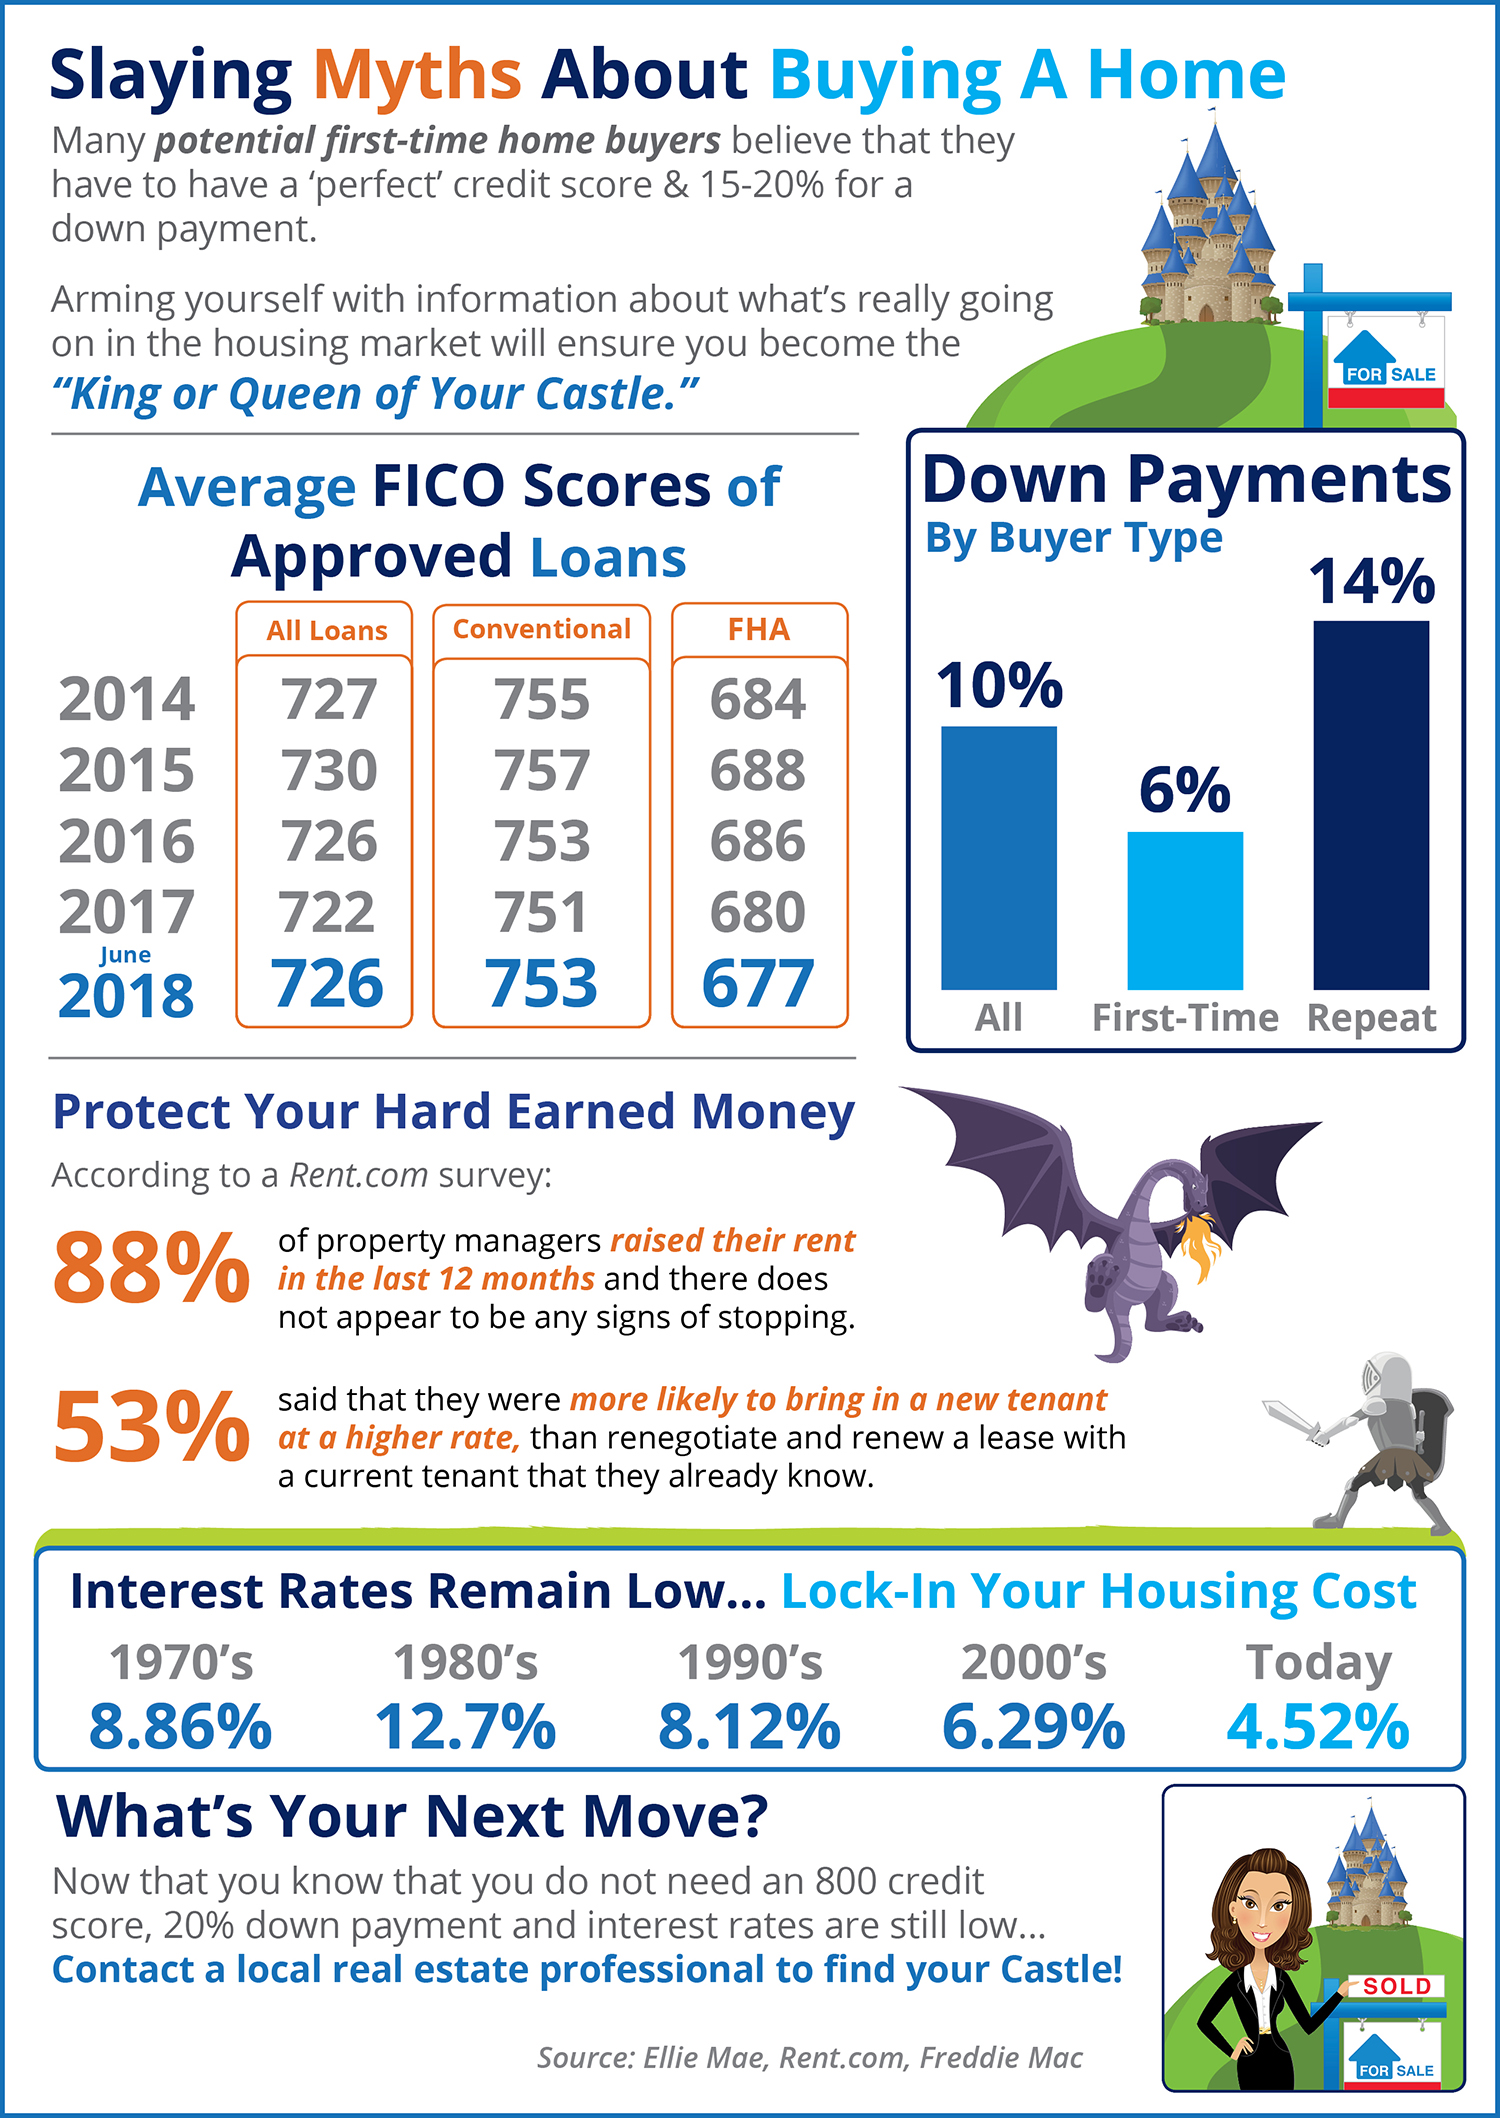 Home Buying Myths Slayed [INFOGRAPHIC] | Bridge Builders